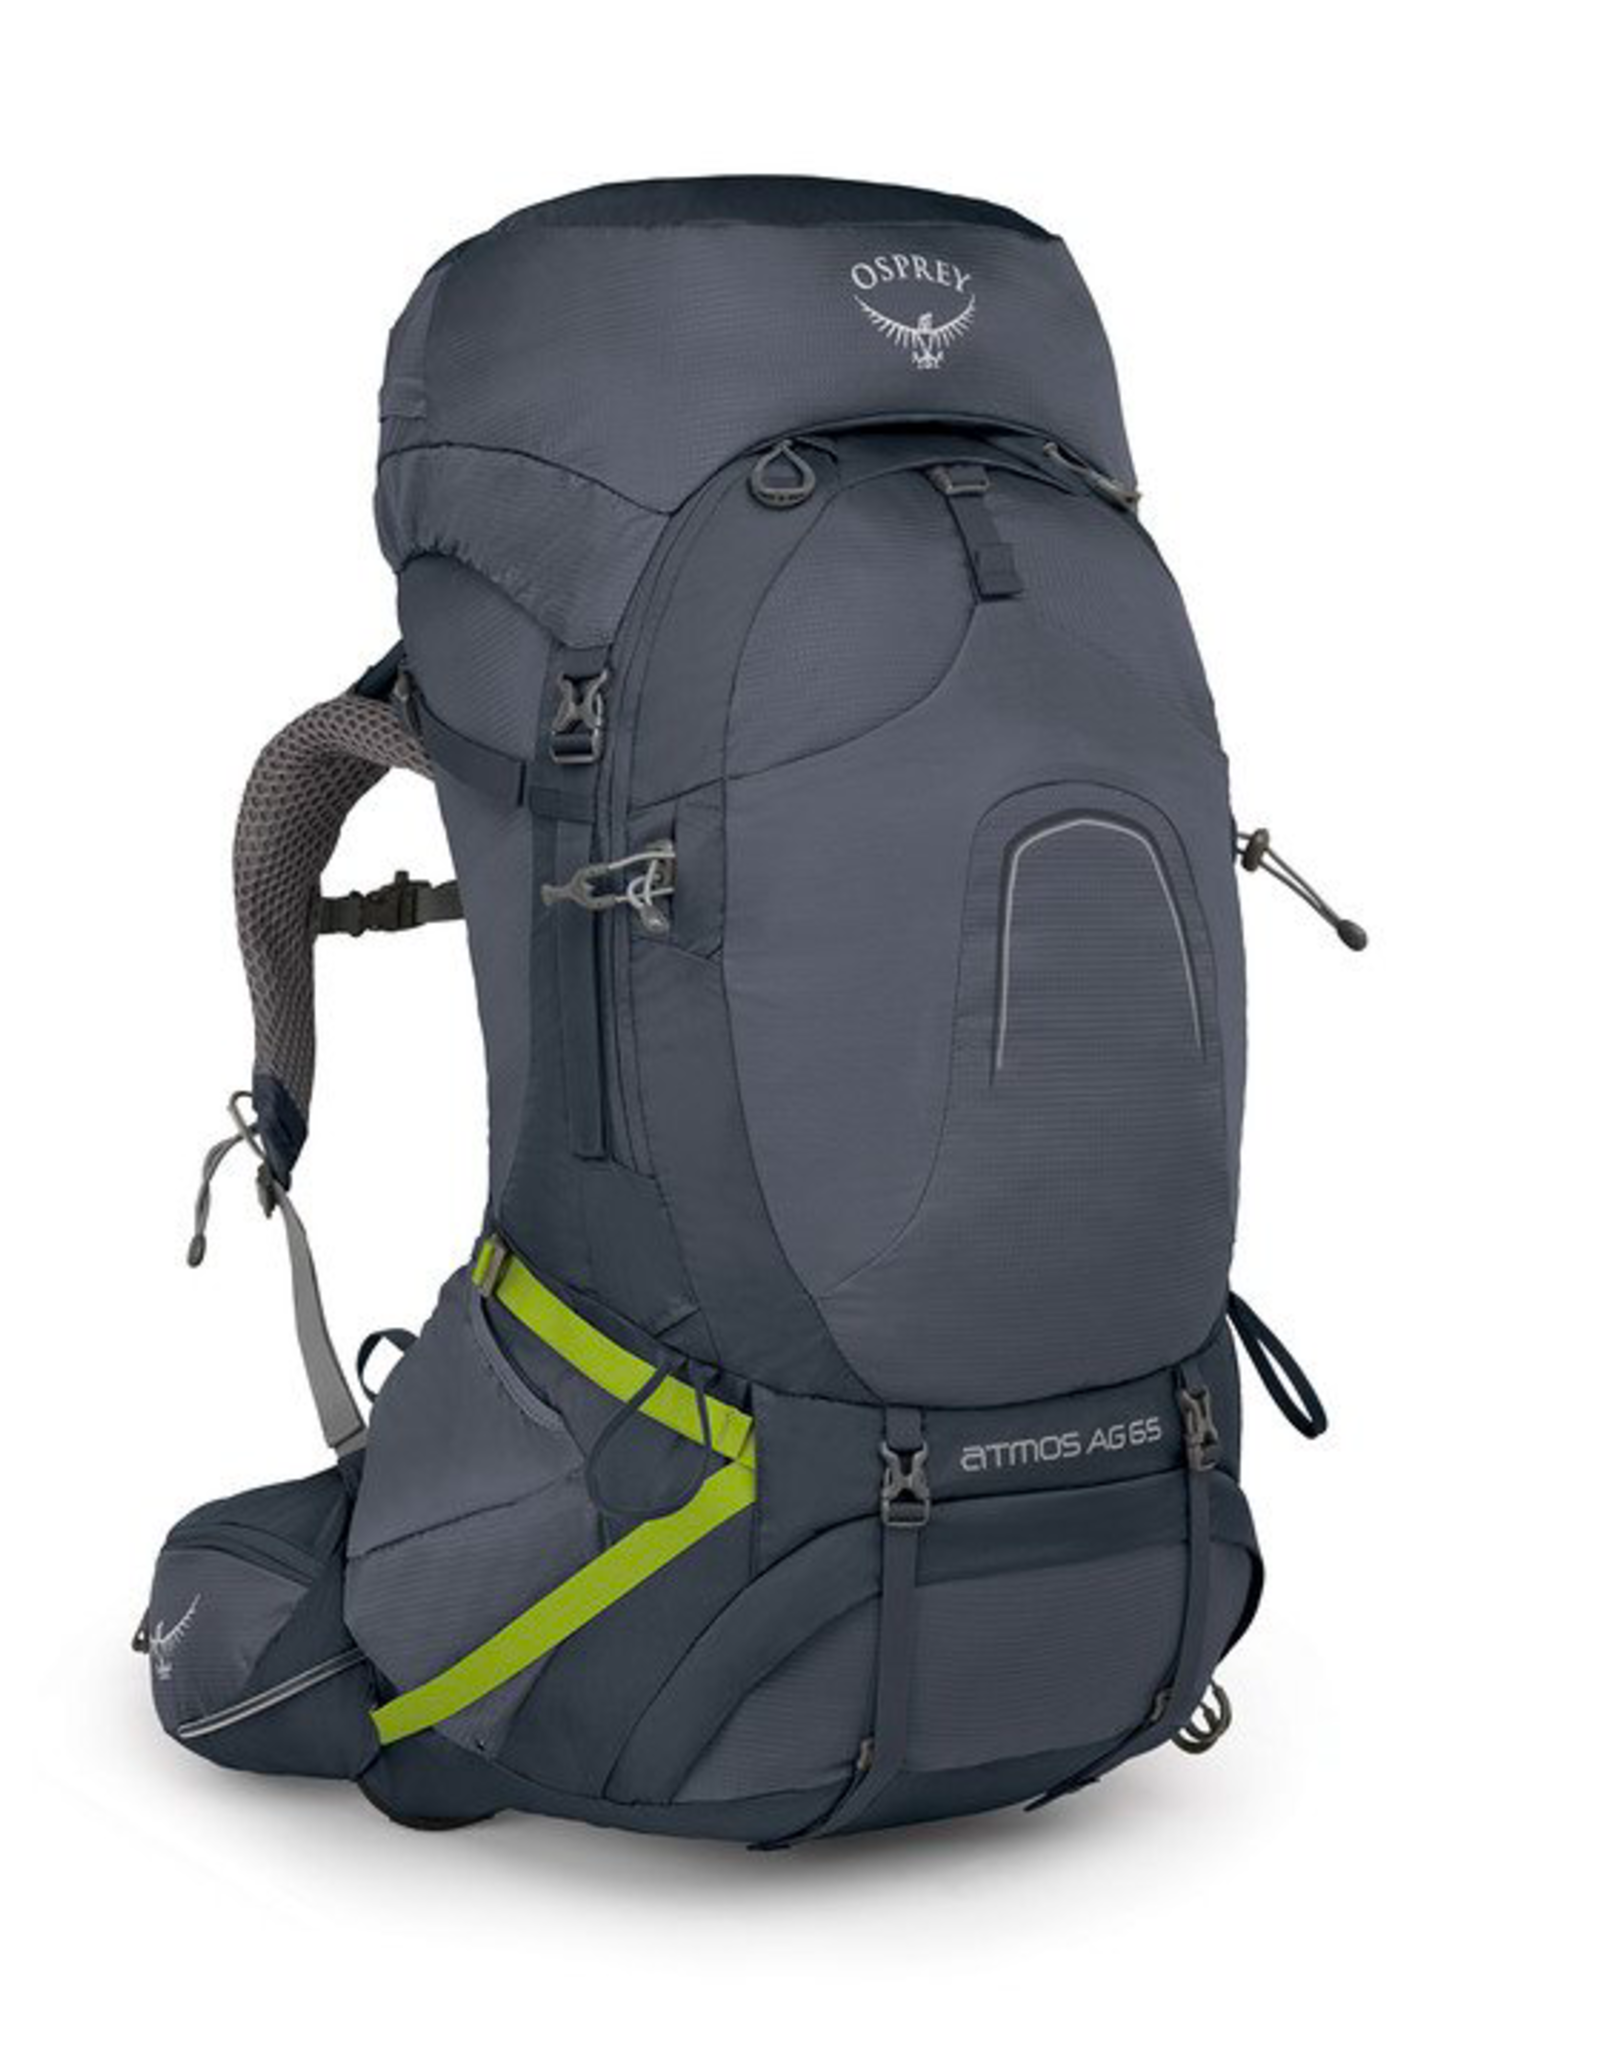 Osprey Size Medium Atmos 65 AG - Abyss Grey Medium